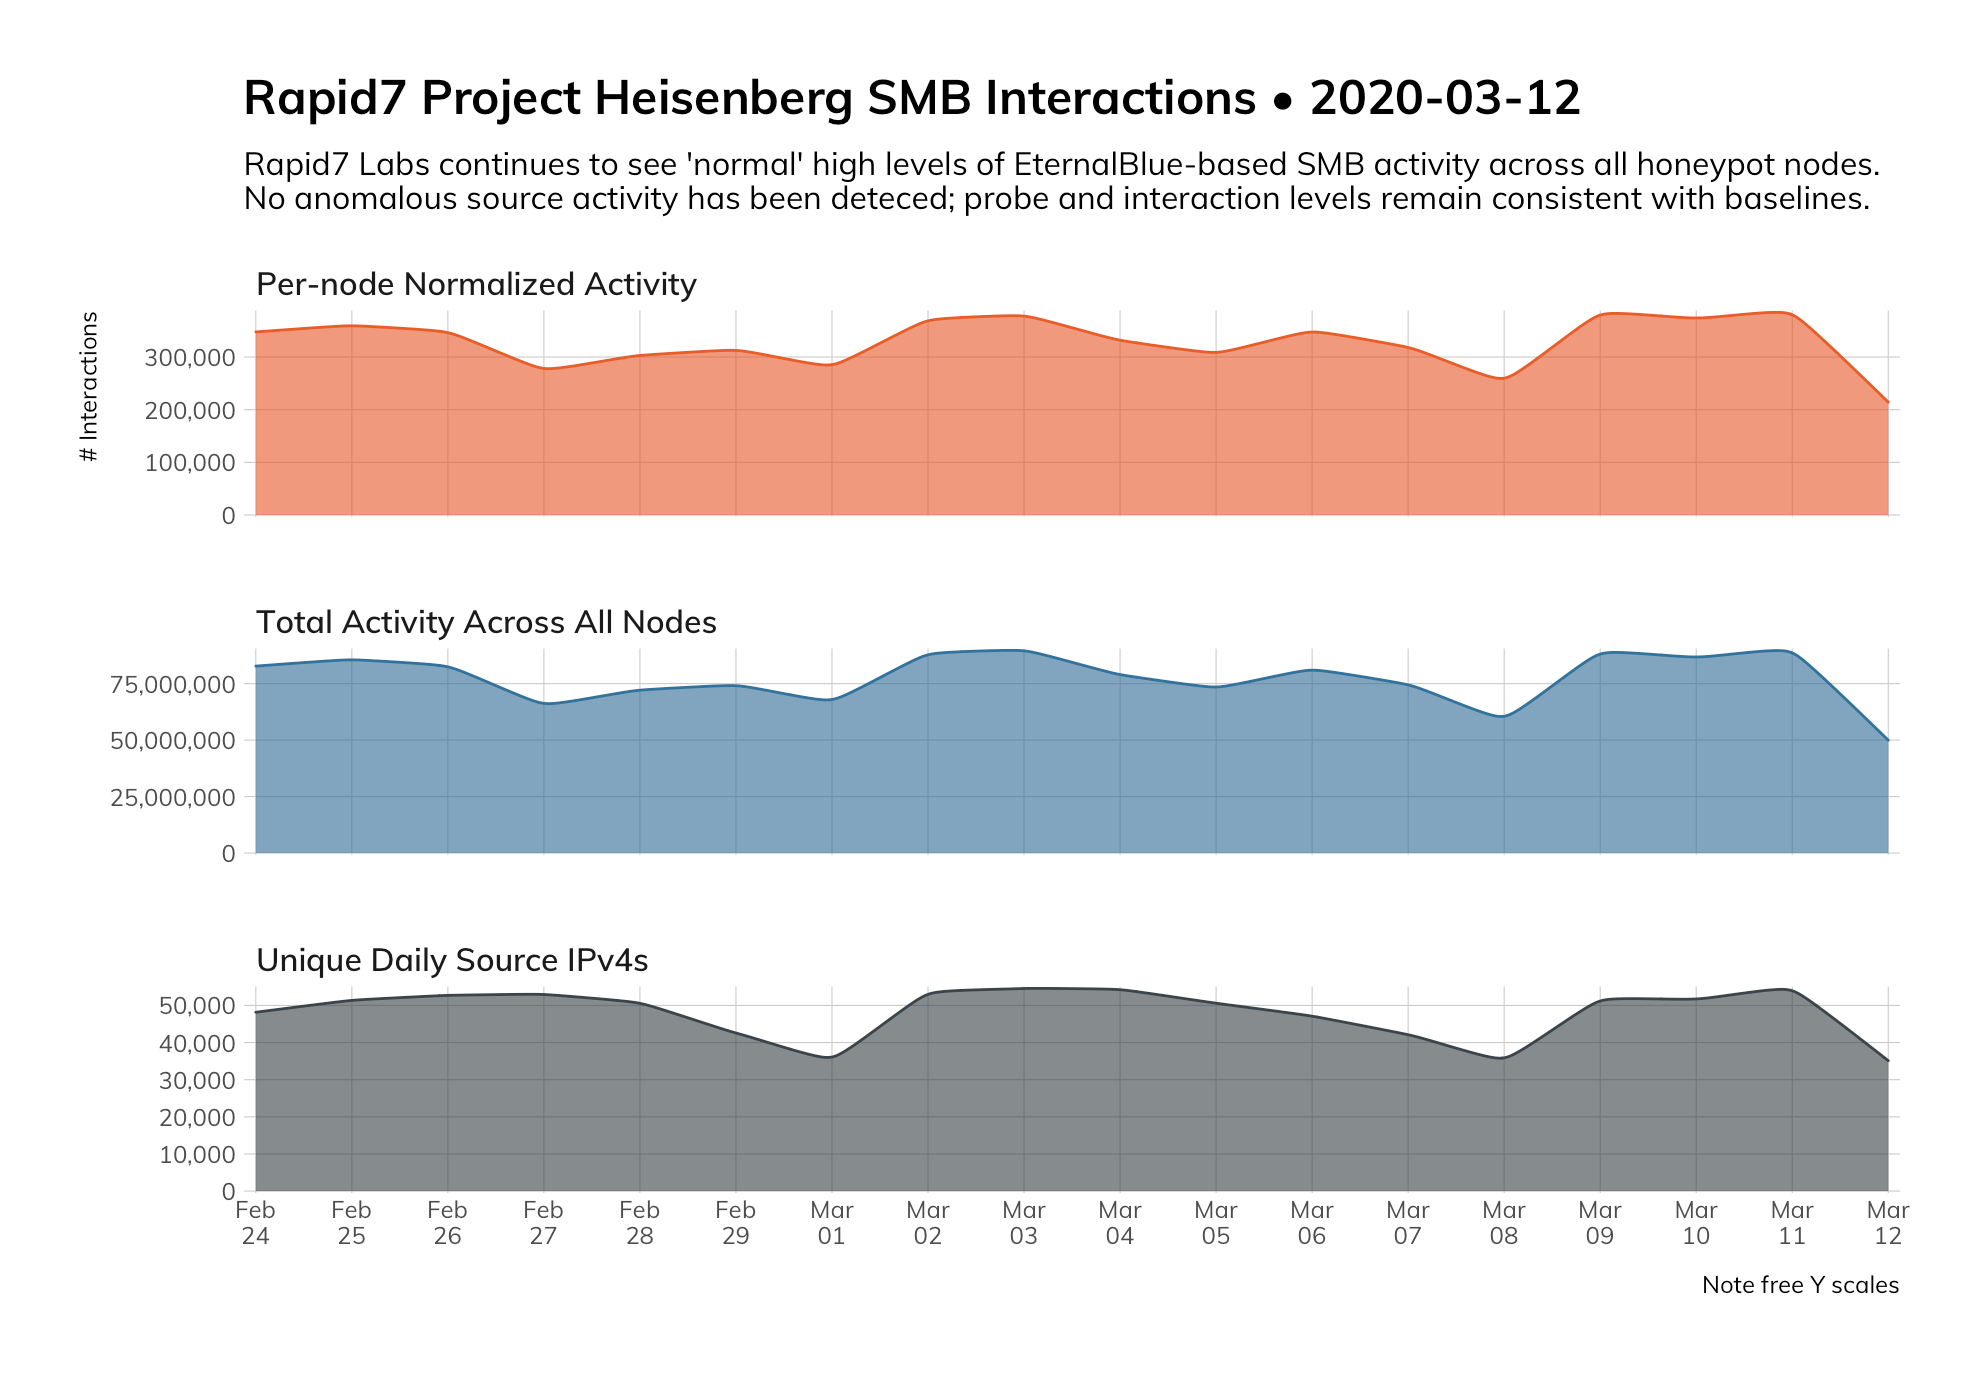 Figure 1: Project Heisenberg SMB honeypot interactions, February 24 to March 11, 2020.